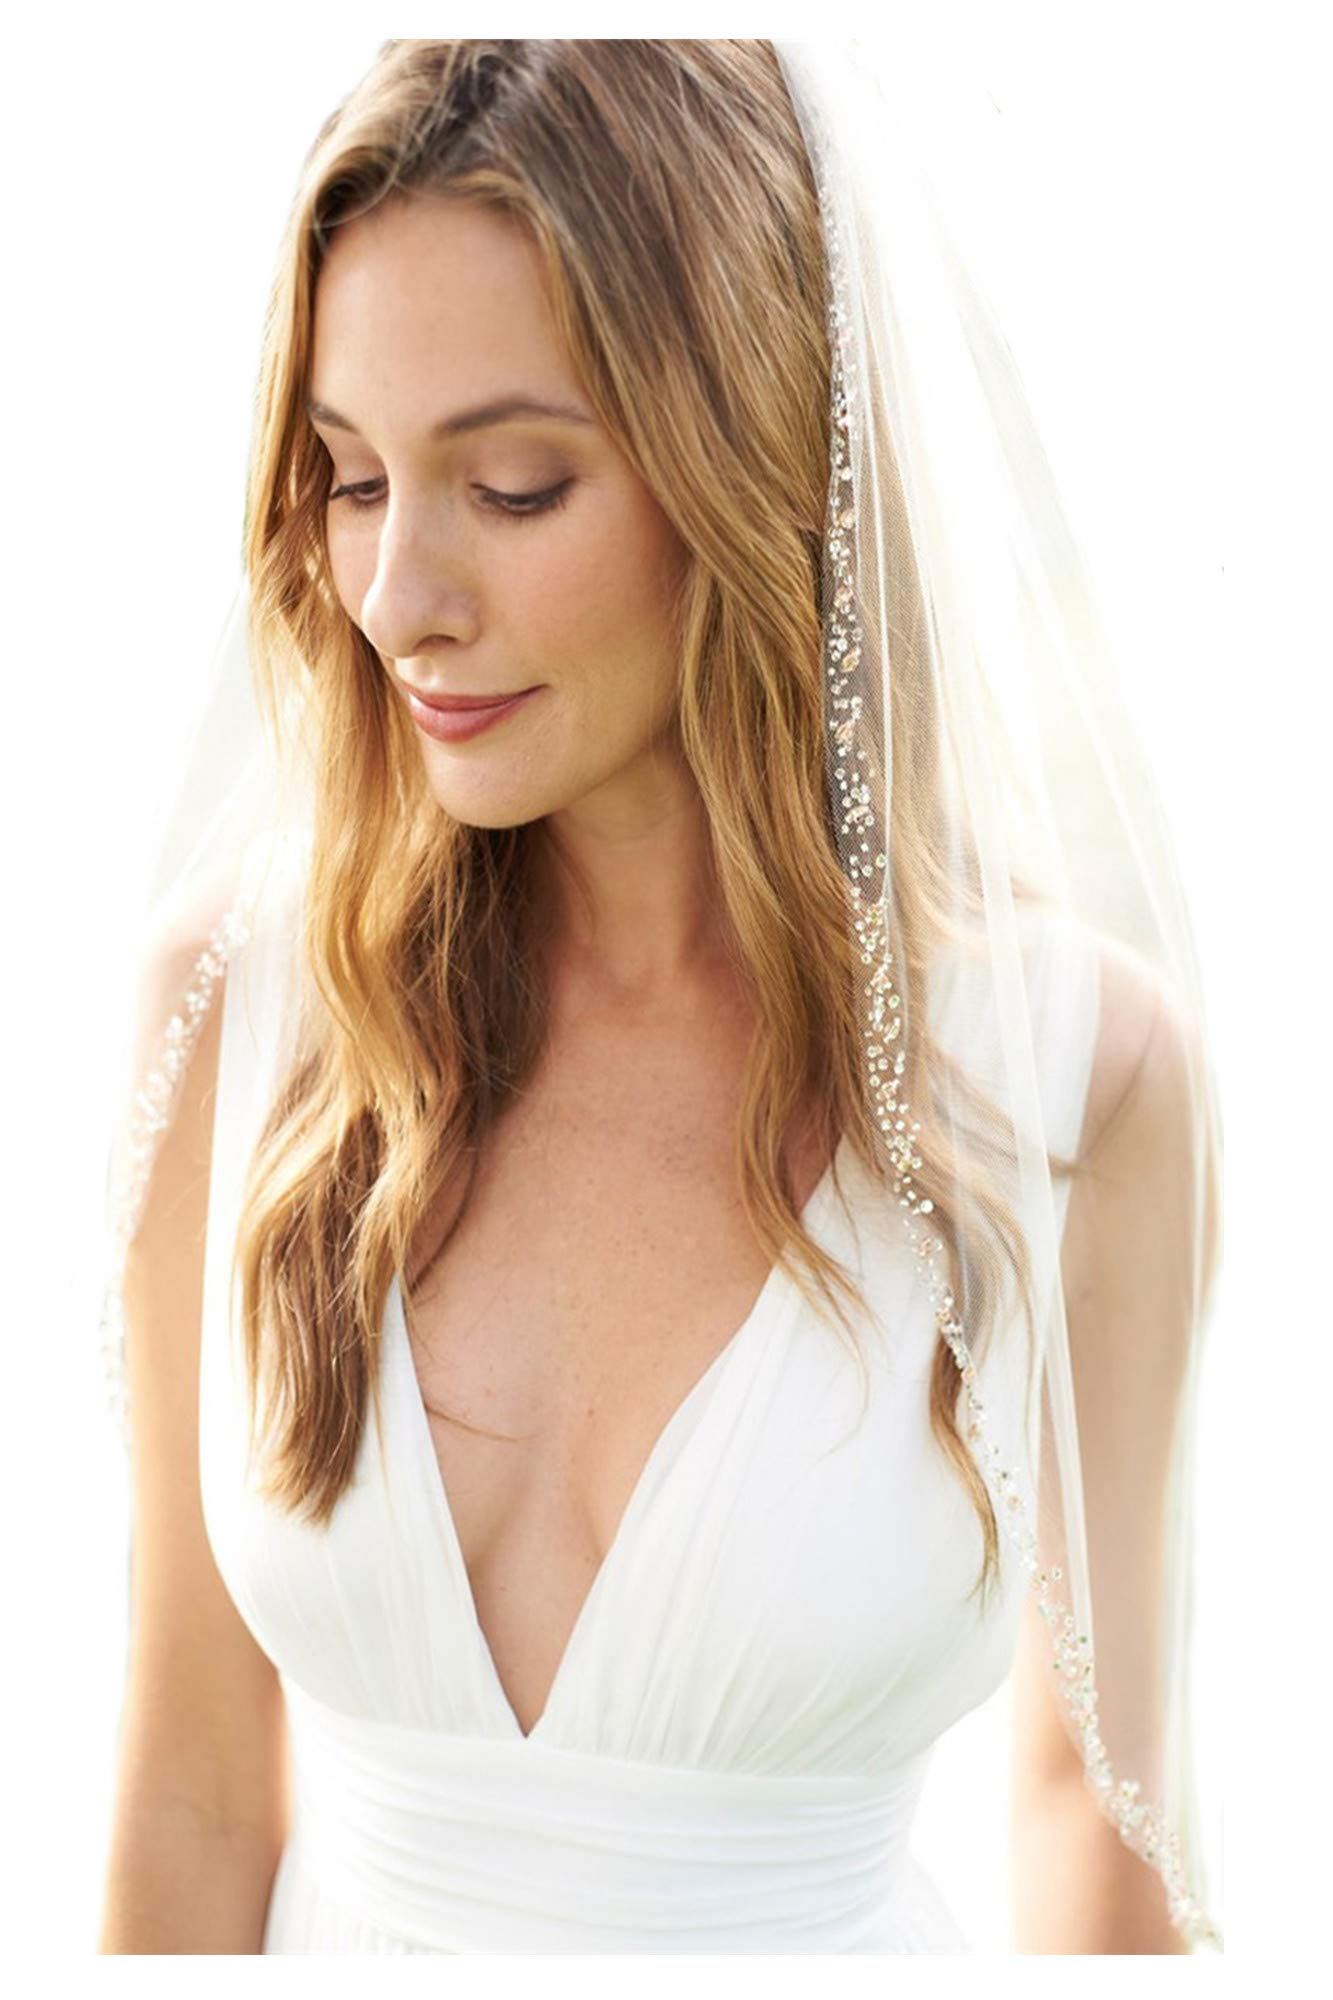 Passat Champagne 1T Fingertip Rose Gold Beaded Edge Wedding Veil Blush Beaded Bridal Veil 123 by Passat